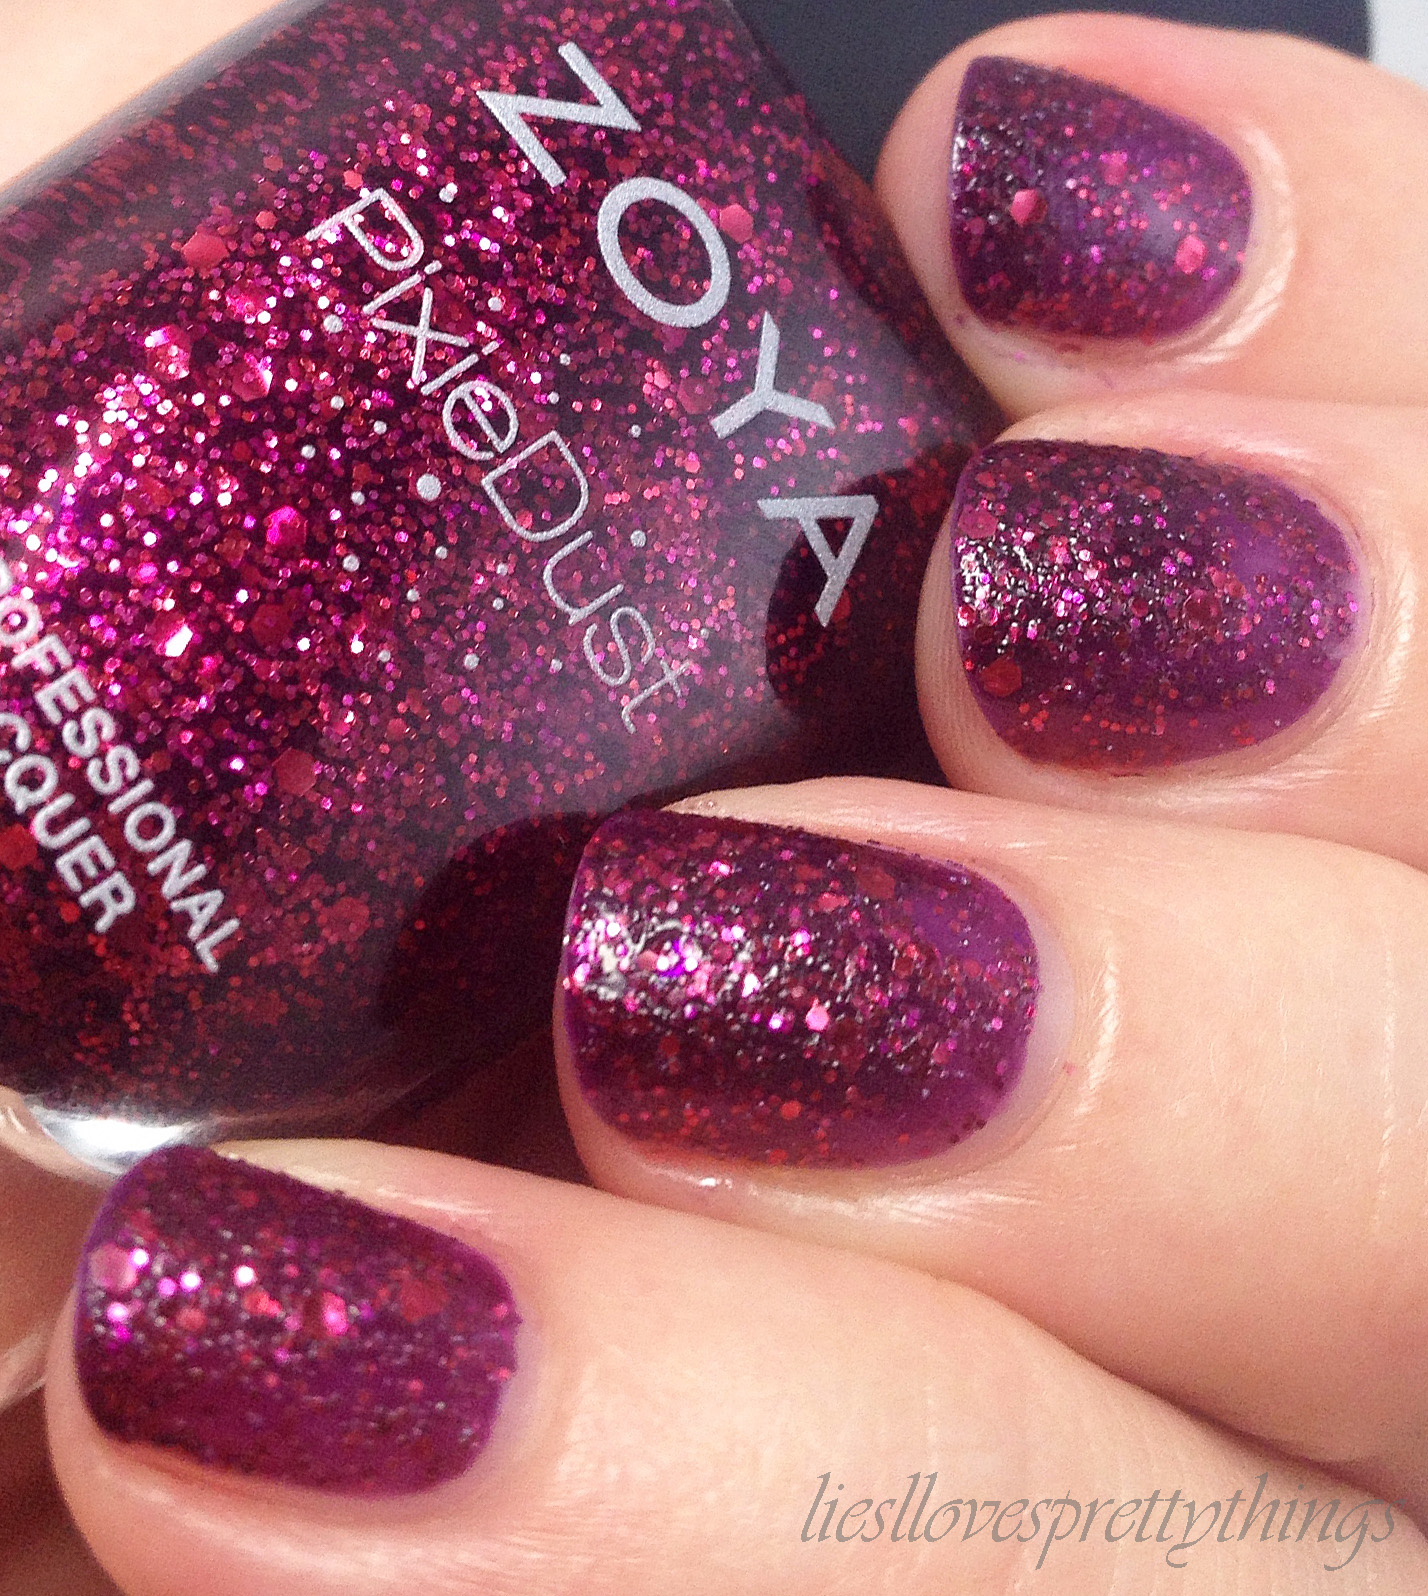 Zoya Noir swatch and review